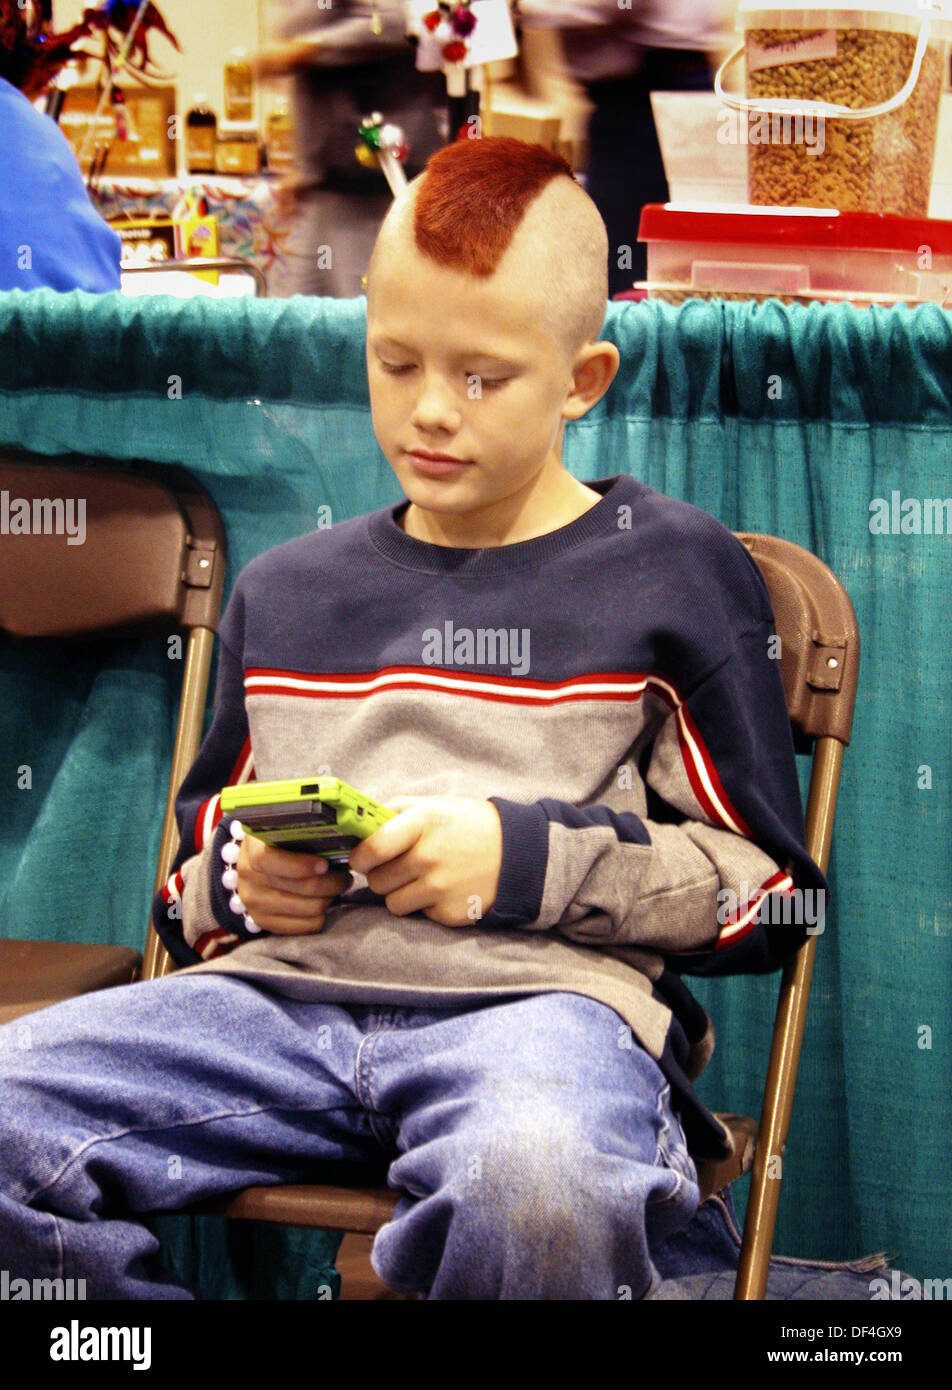 9 Years Old Boy Playing Gameboy With Mowhawk Haircut Stock Photo